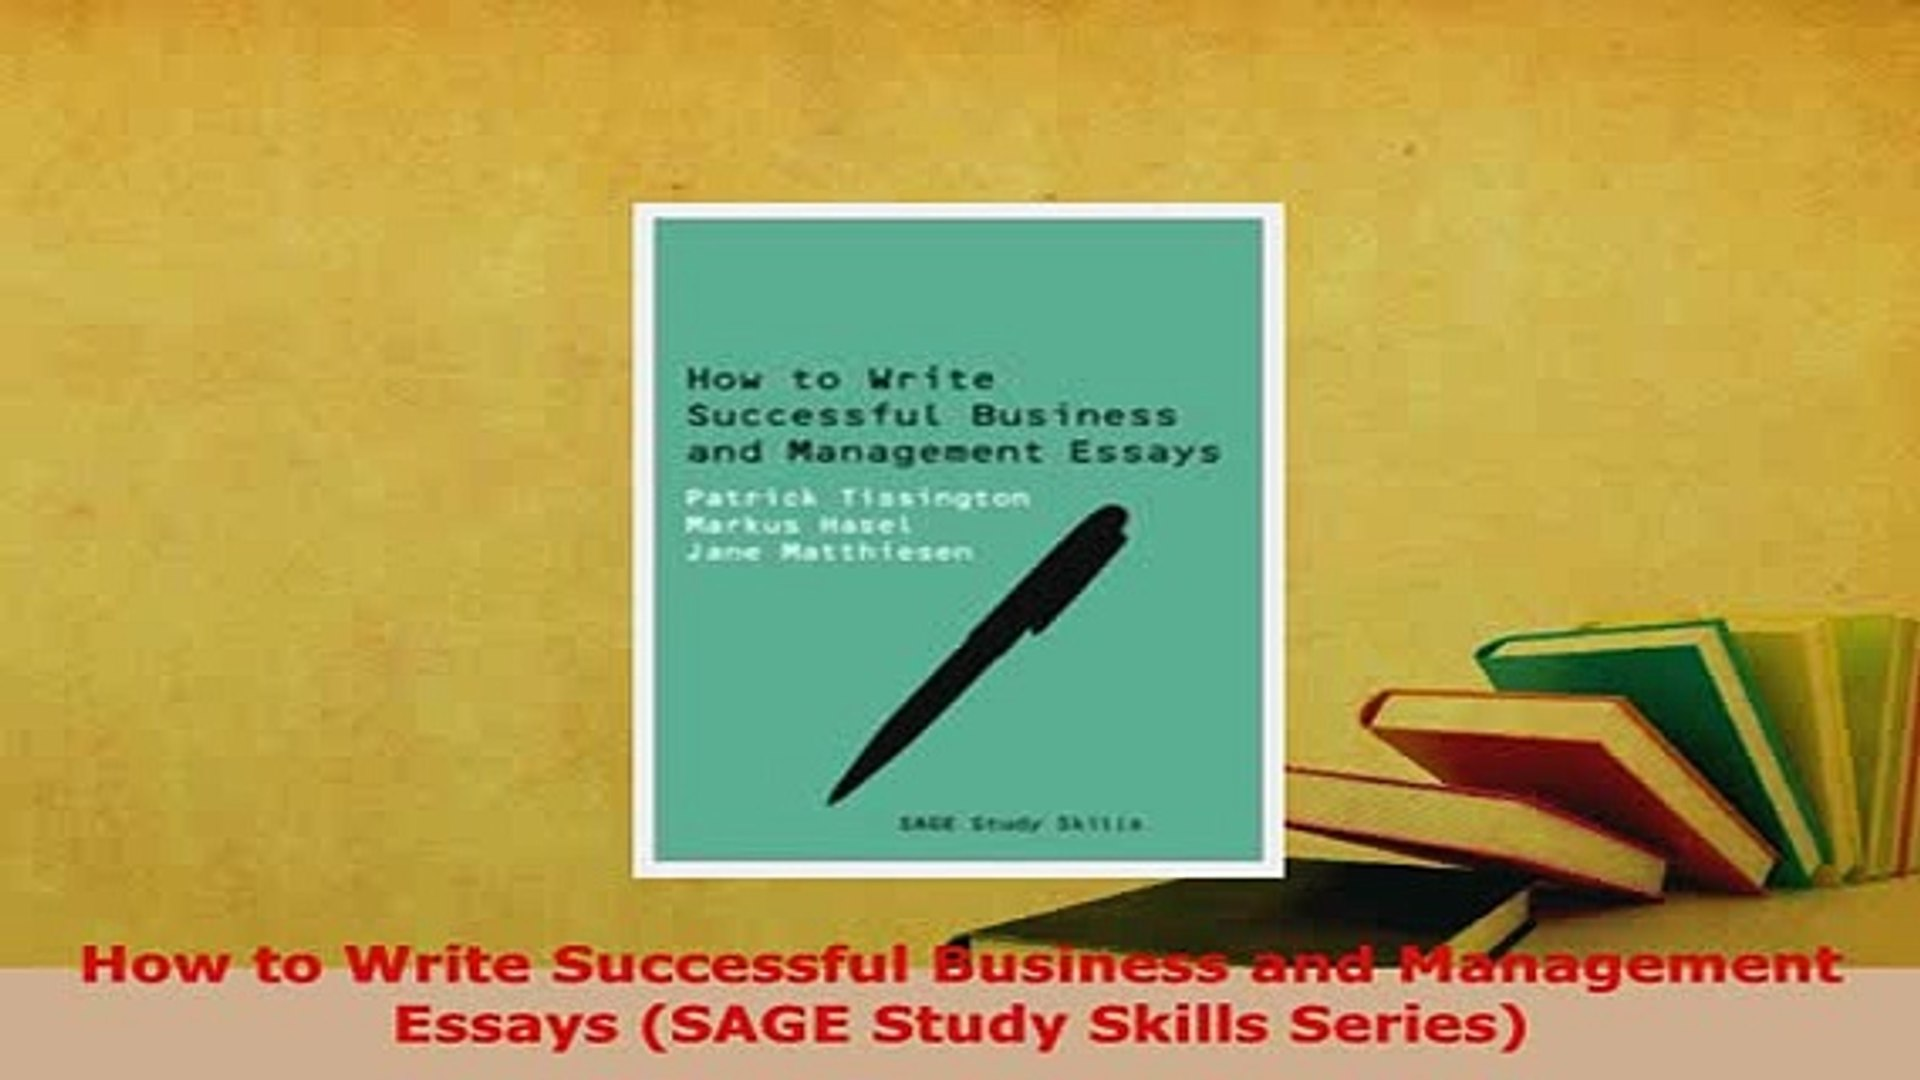 How To Write A High School Essay  Best Essays In English also Definition Essay Paper Download How To Write Successful Business And Management Essays Sage Study  Skills Series Download Online Essay On Pollution In English